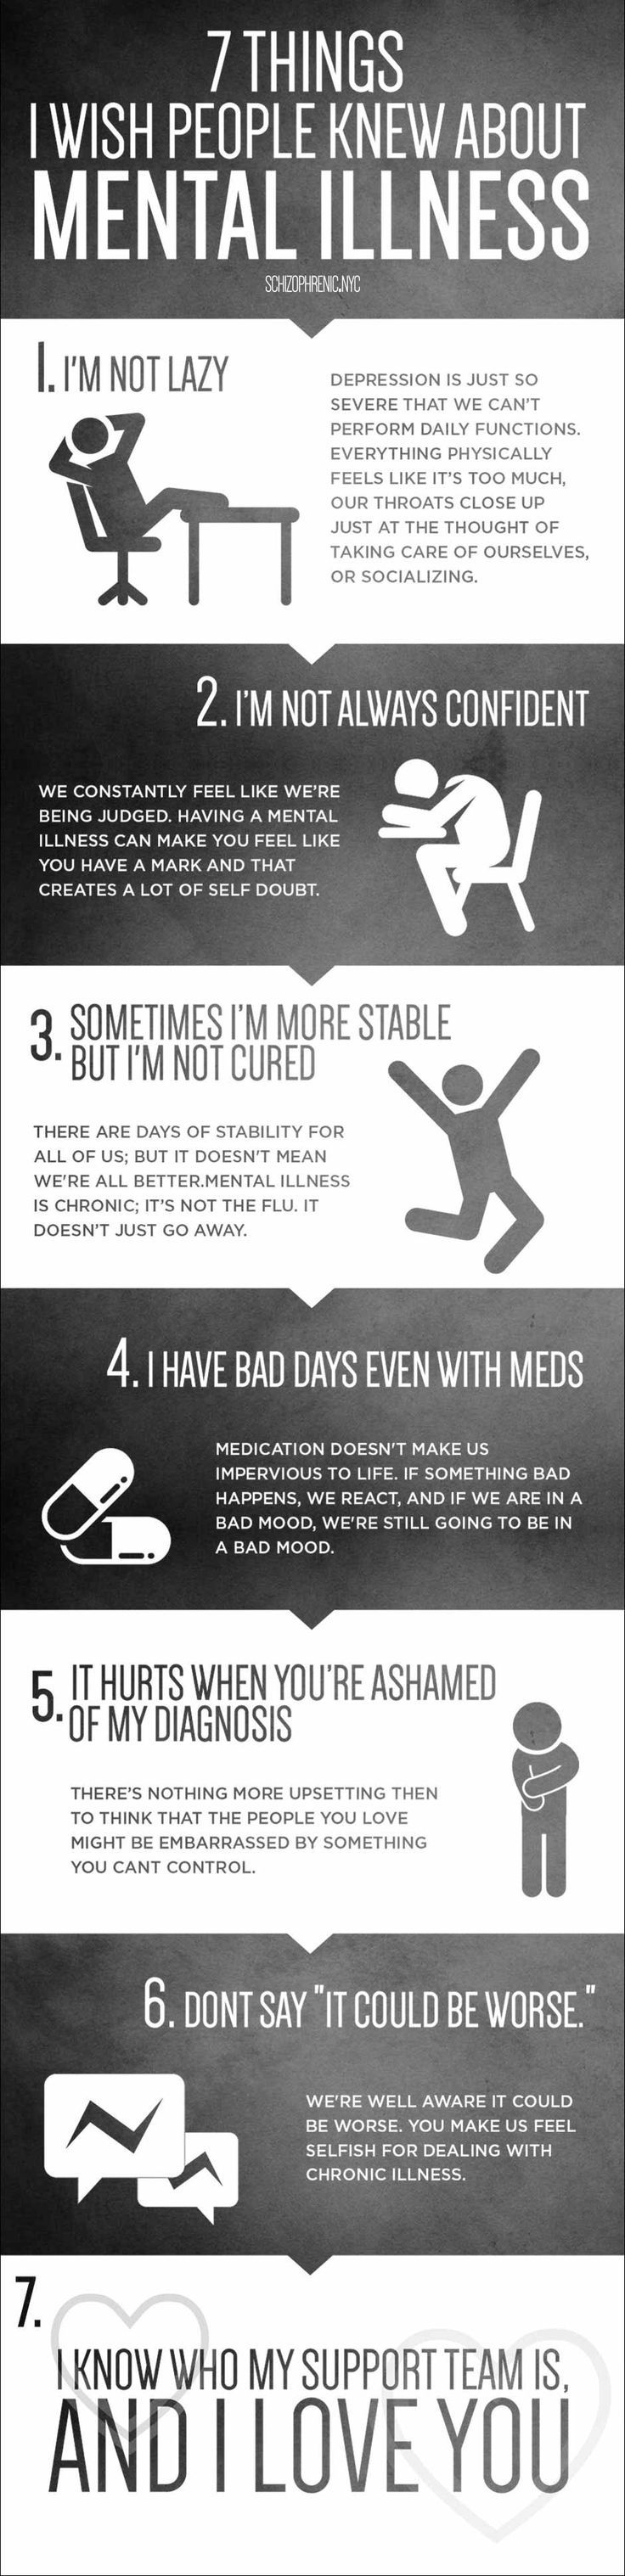 7 Things I Wish People Knew About Mental Illness